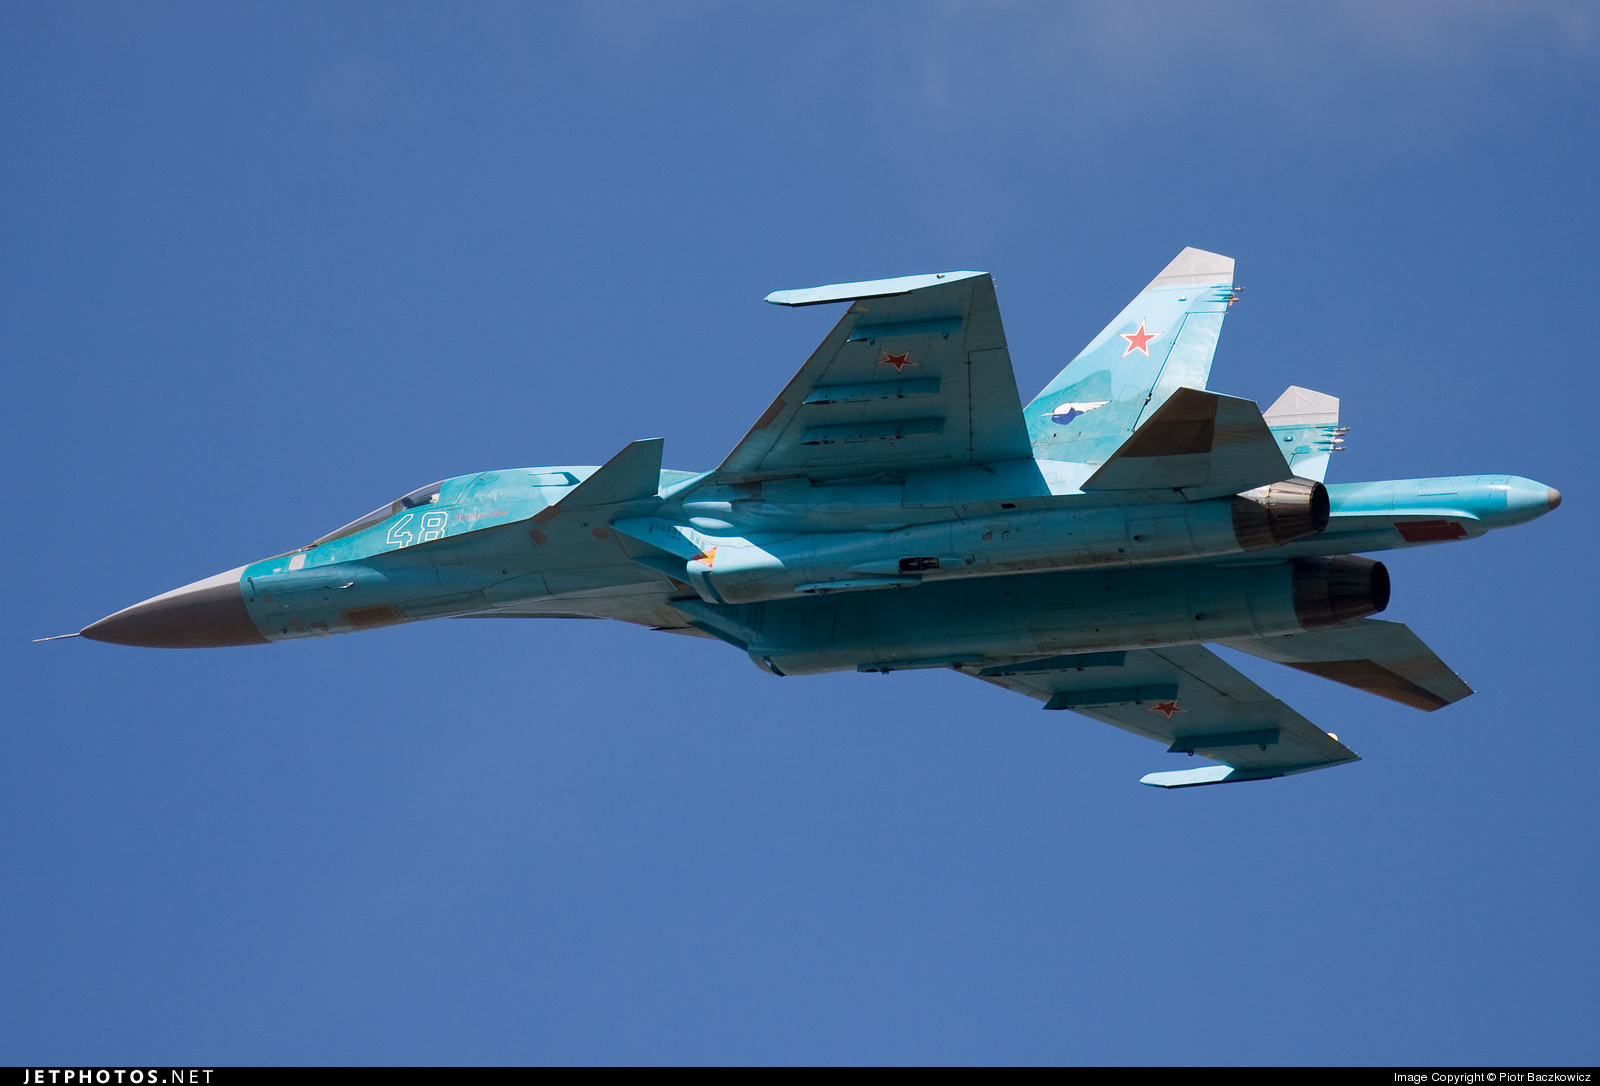 48 - Sukhoi Su-34 Fullback - Russia - Air Force